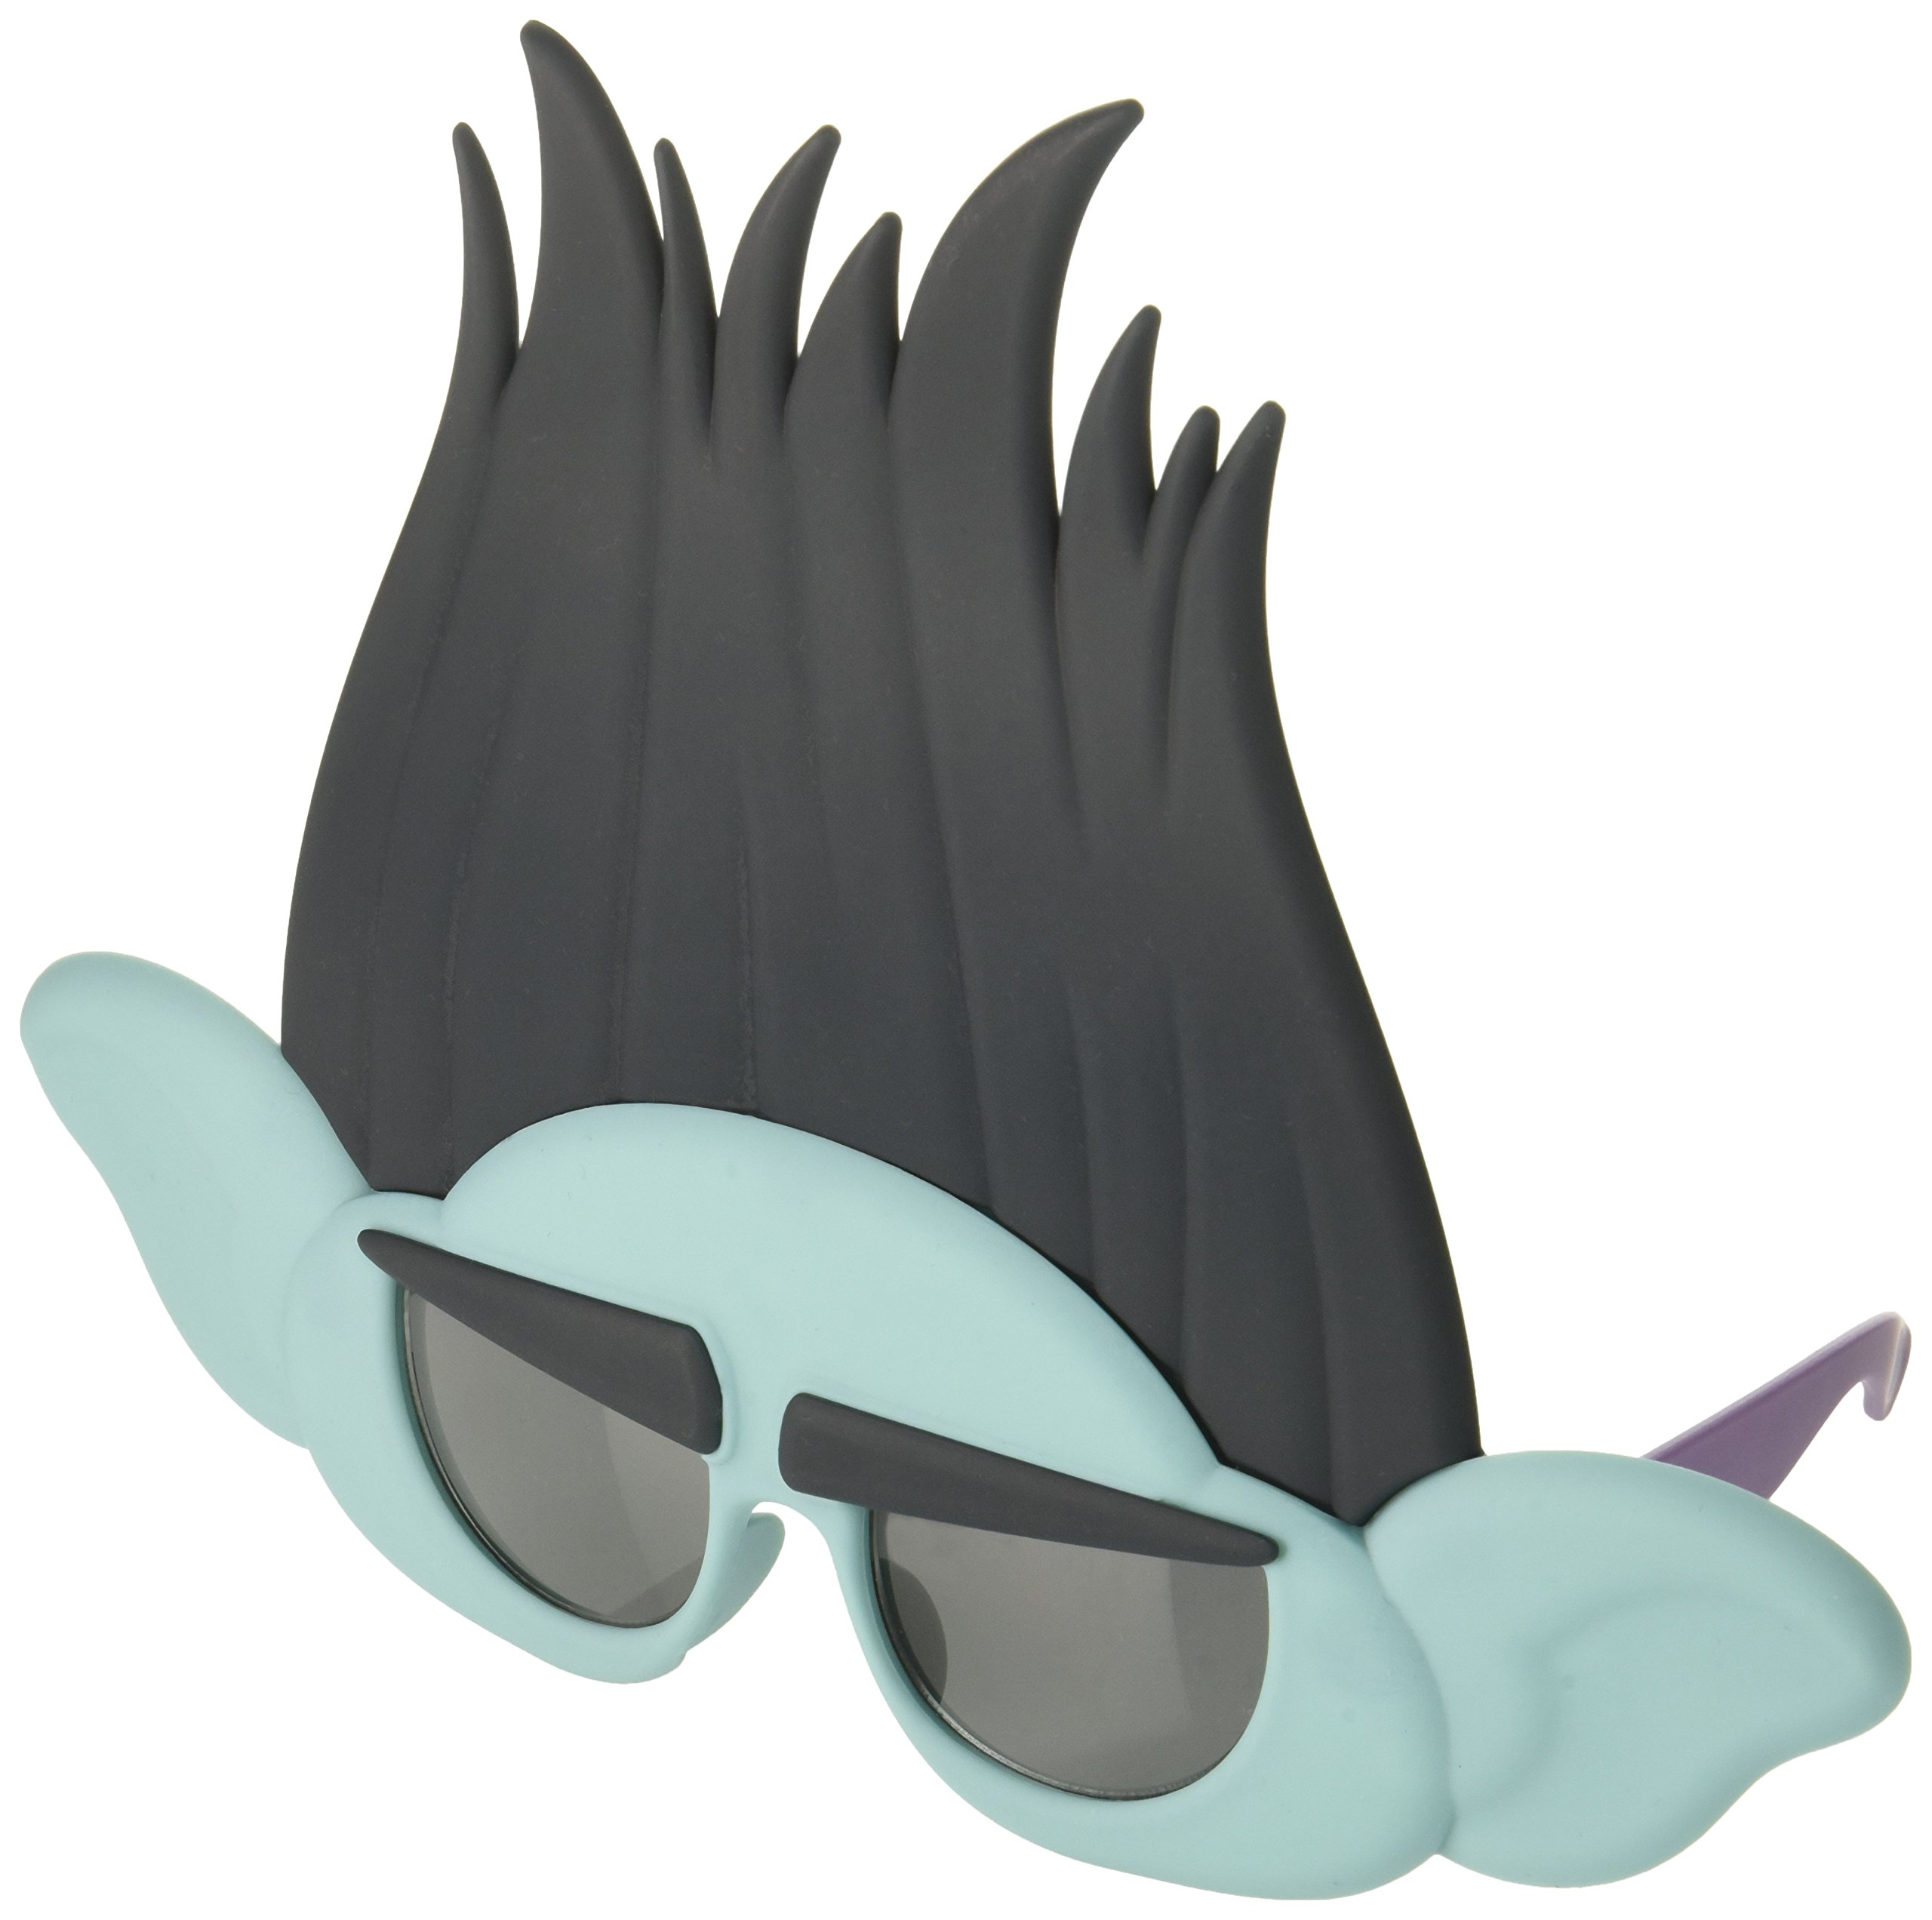 Sun-Staches Trolls Trolls Branch Sunglasses, Party Favors, UV400